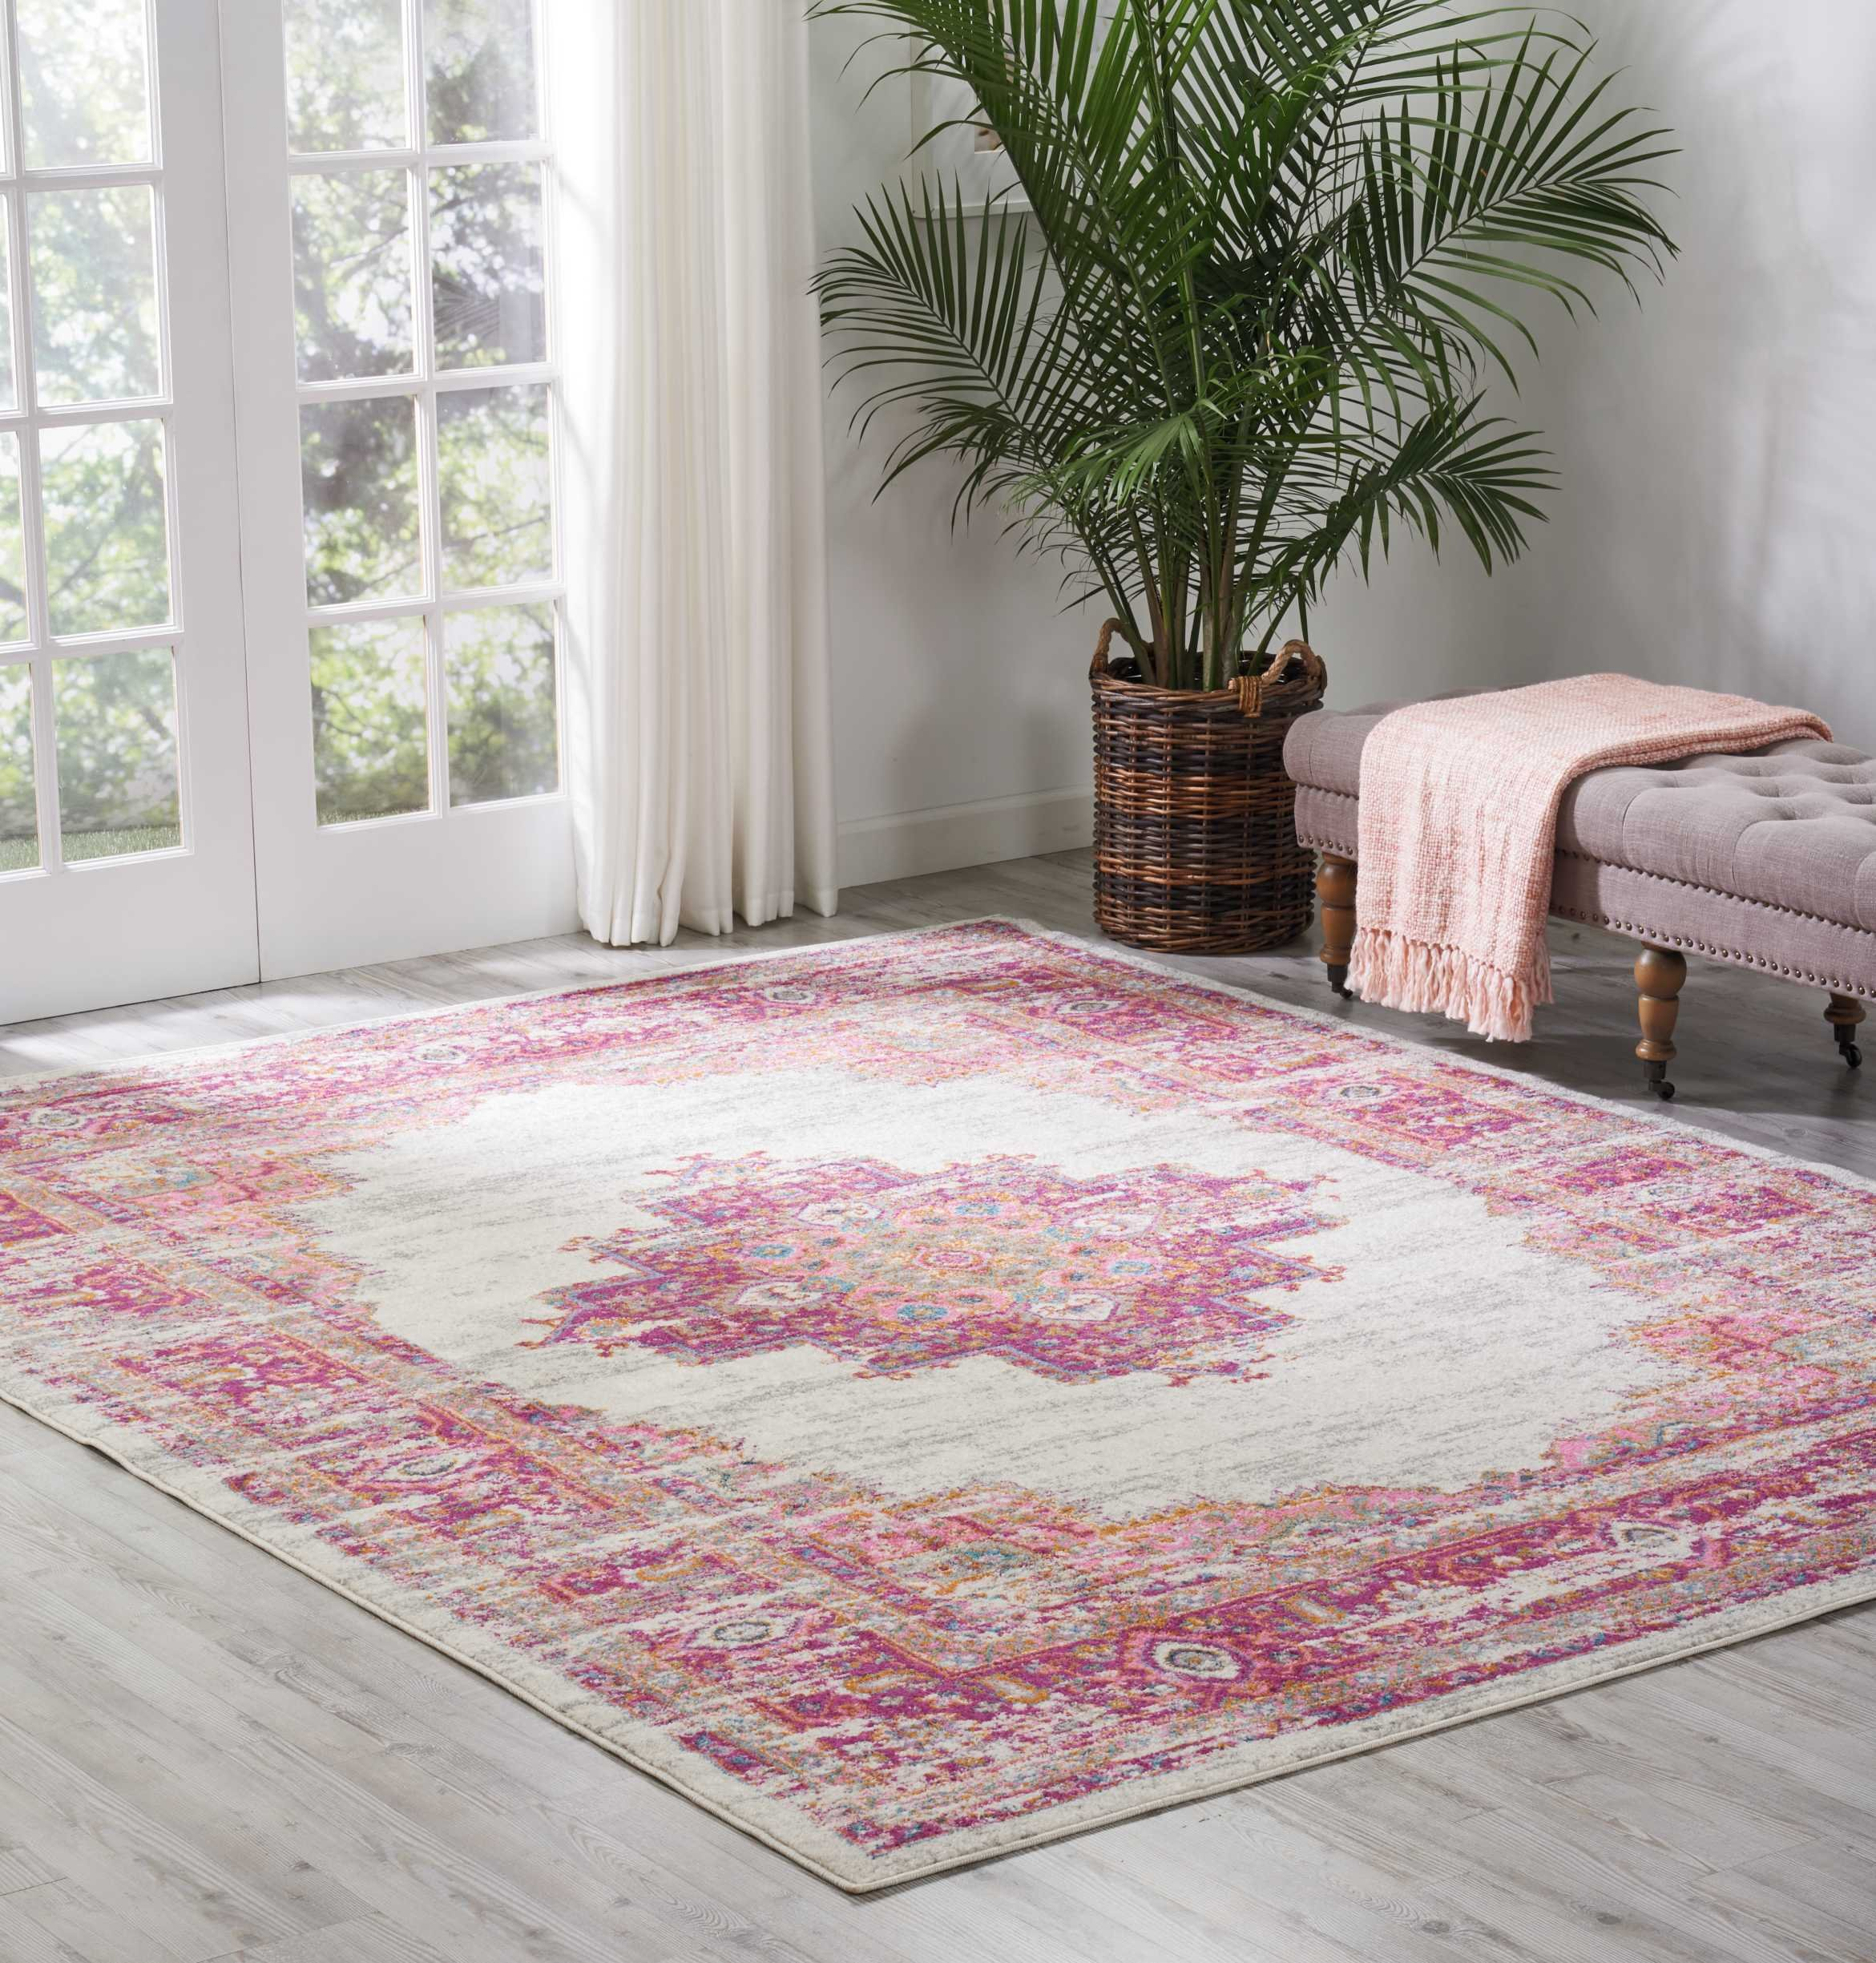 Nourison (PSN03) Passion Modern Traditional Colorful Ivory/Fushia Pink Area Rug, 8' x  10' by Nourison